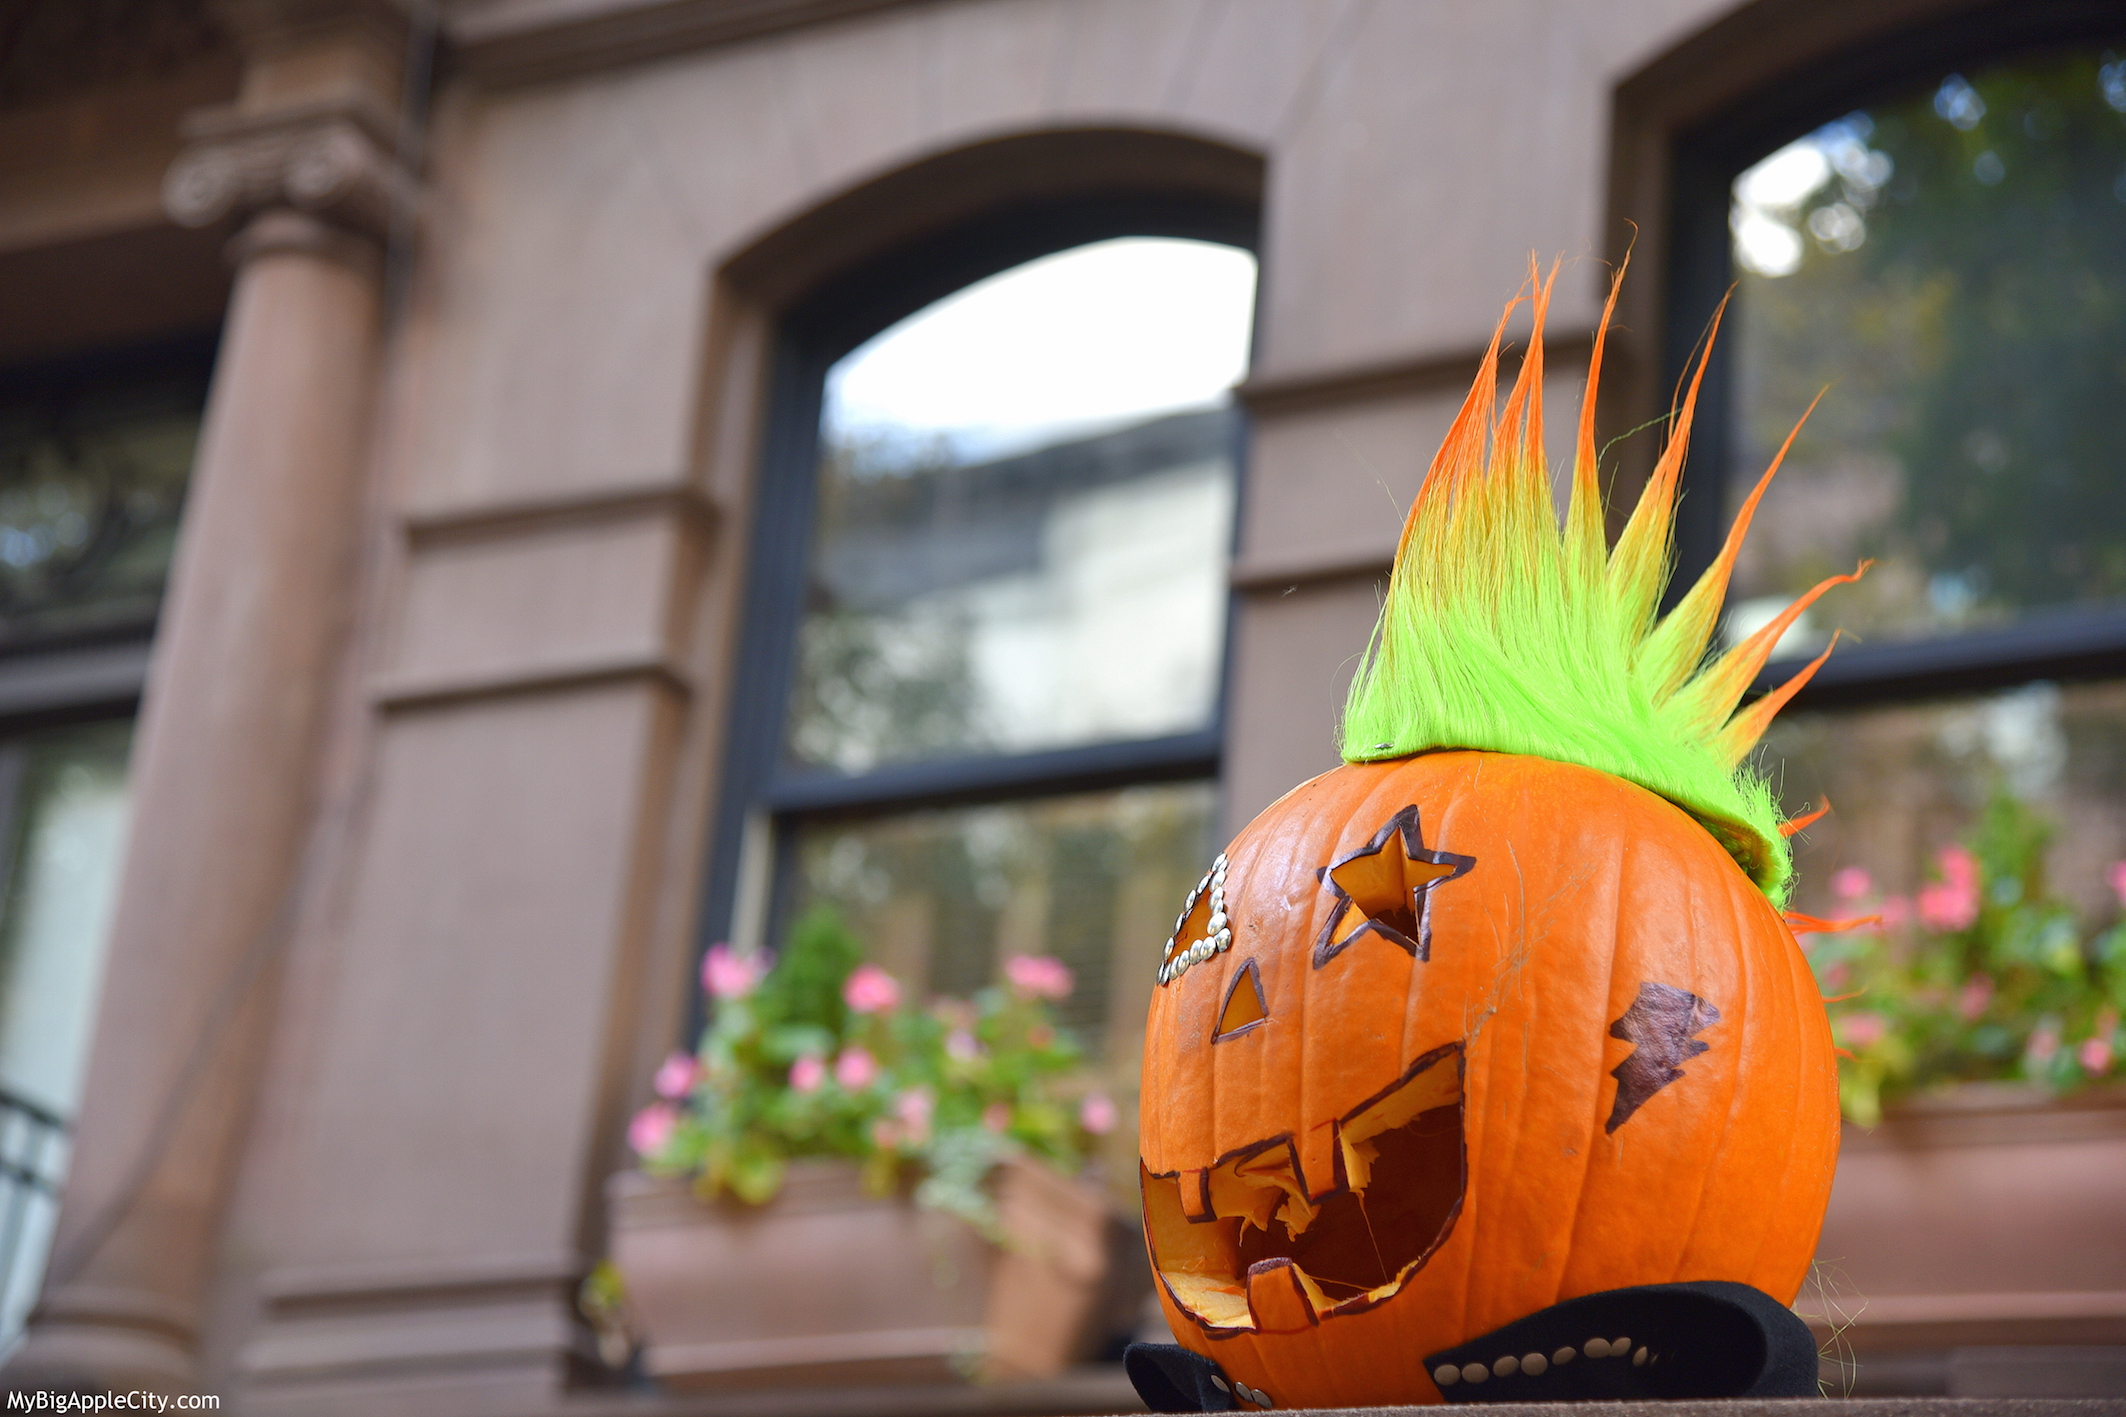 Punk-pumpkin-best-new-york-travel-manhattan-mybigapplecity